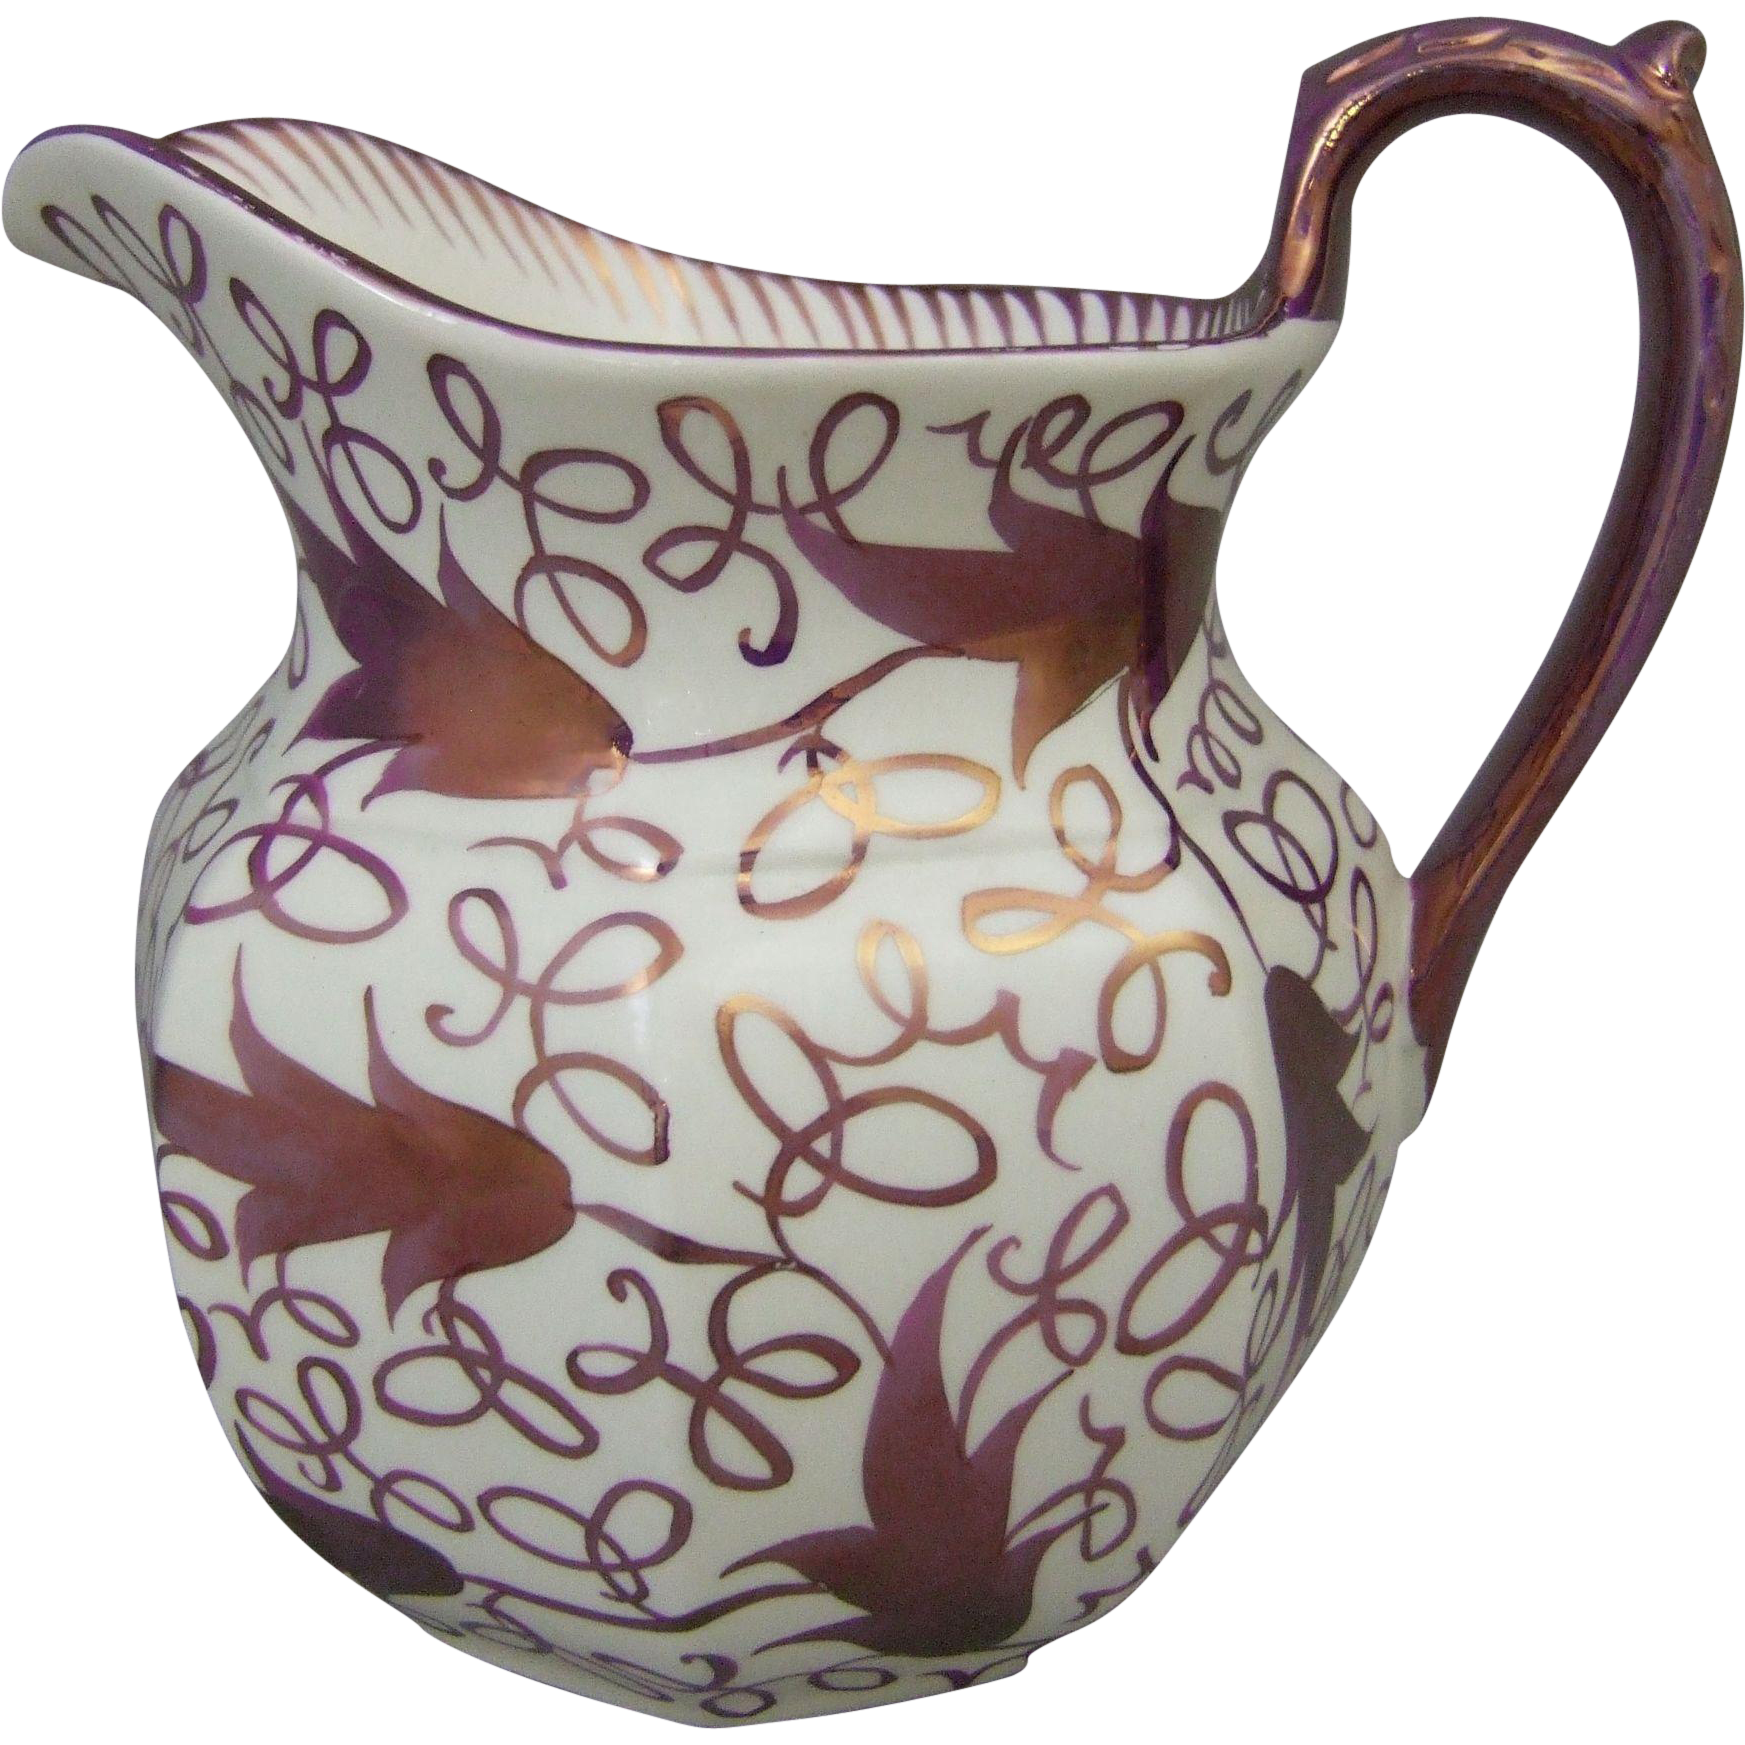 Wedgwood Copper Luster Ceramic Milk Jug